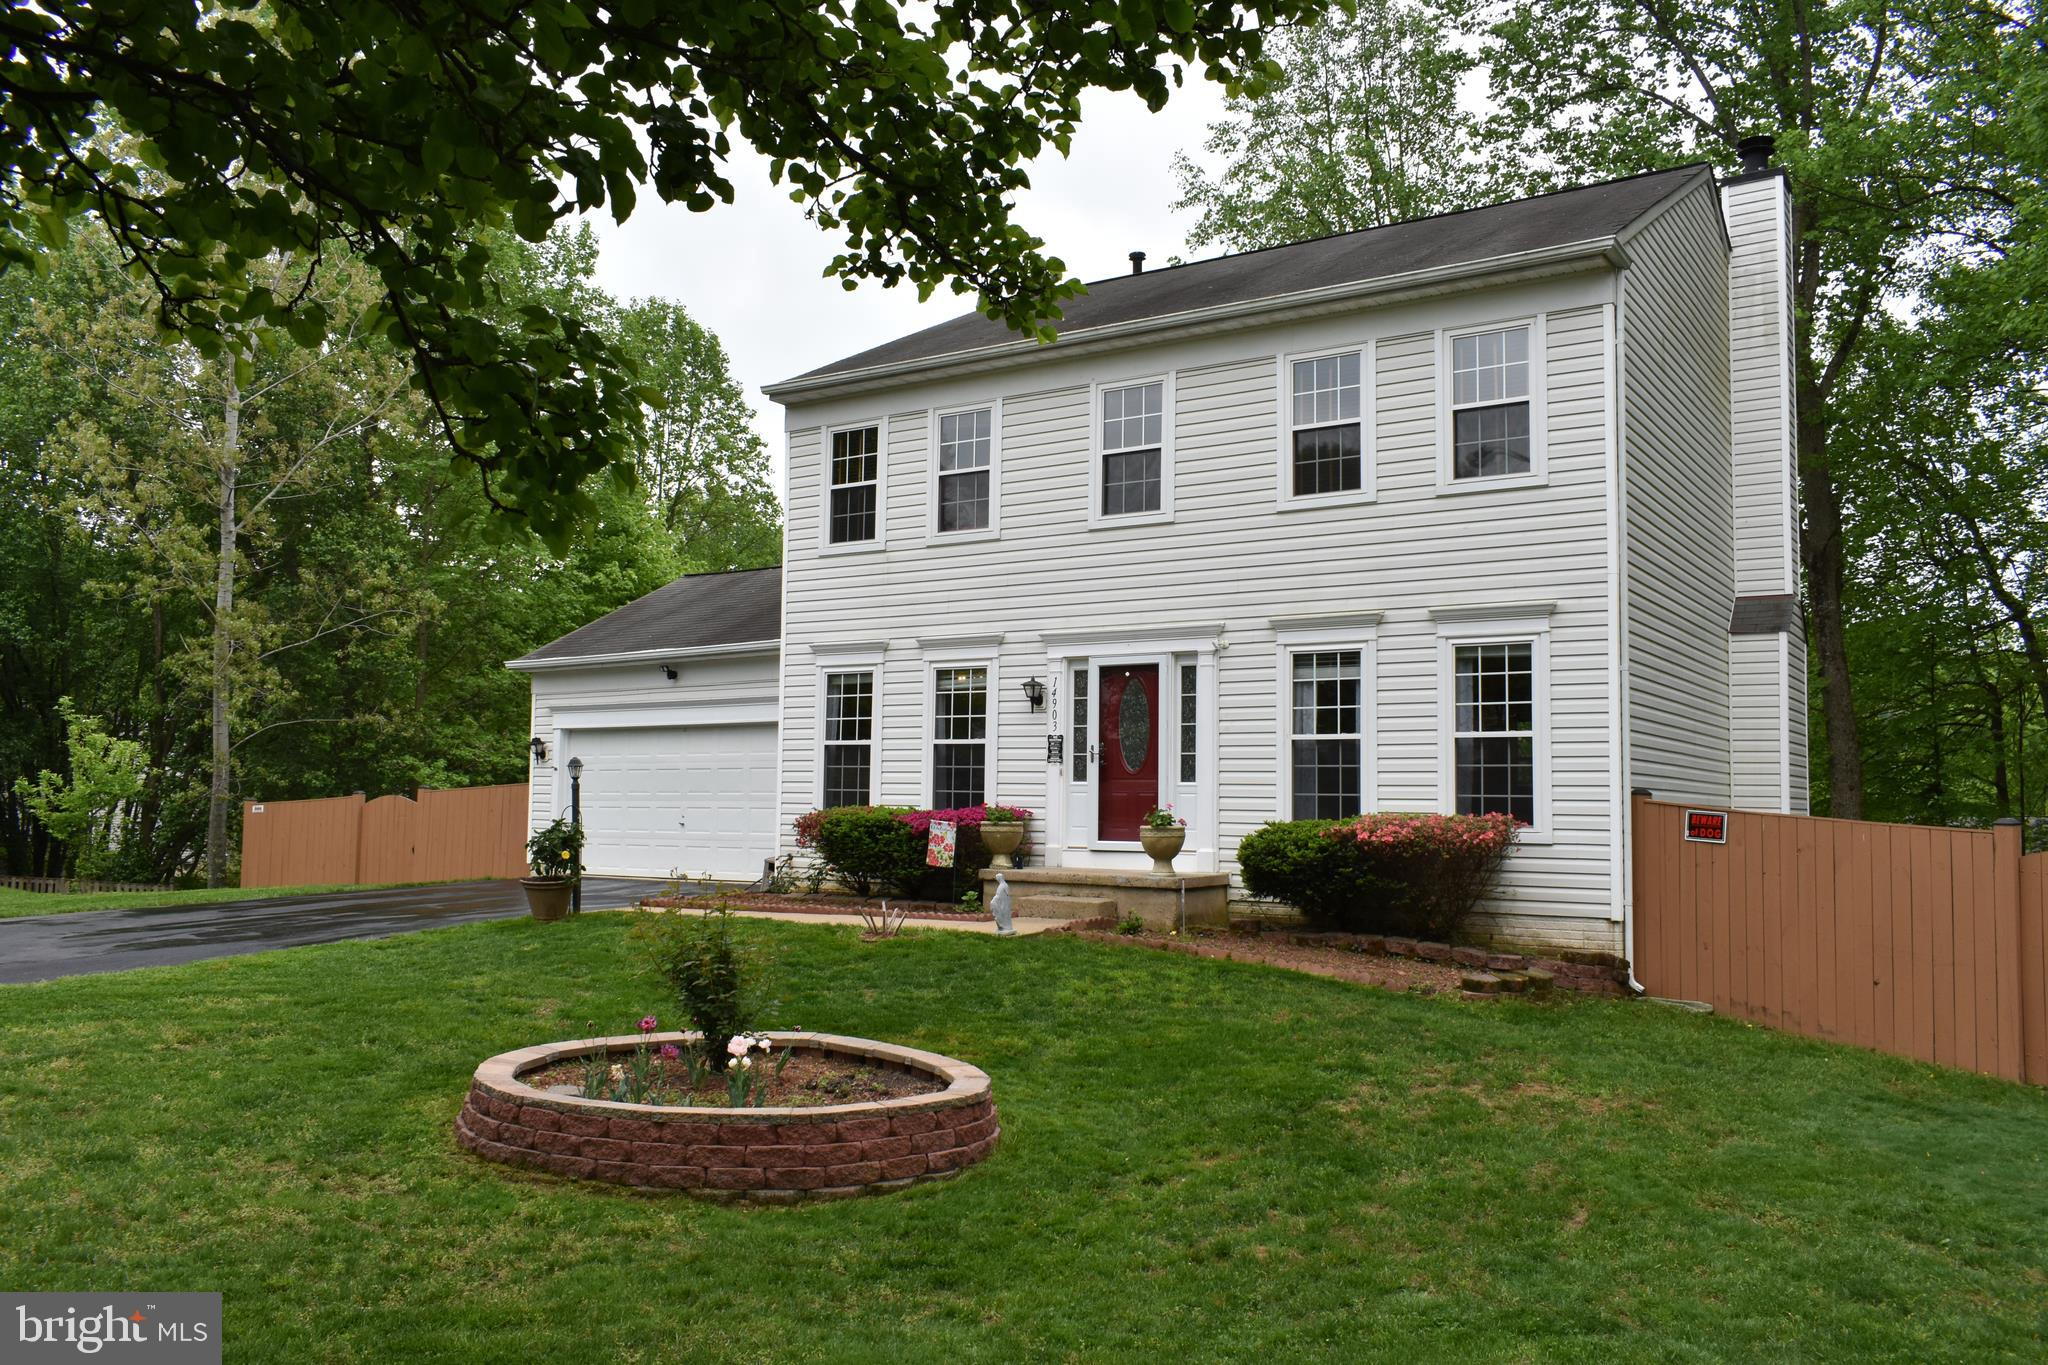 Lots of TLC here!!! You will love this 3 level Colonial that sits on a quiet cul-de-sac and has a wooded level fenced in lot.  Our backyard has a new 12x12 shed and double deck. Seller totally remodeled the kitchen from top to bottom 18 months ago. All the windows were replaced 3 years ago. The HWH was replaced 4 years ago.  The top two levels have hardwood floors throughout. Our lower level has a rec room, den, full bath and a true 5th bedroom.